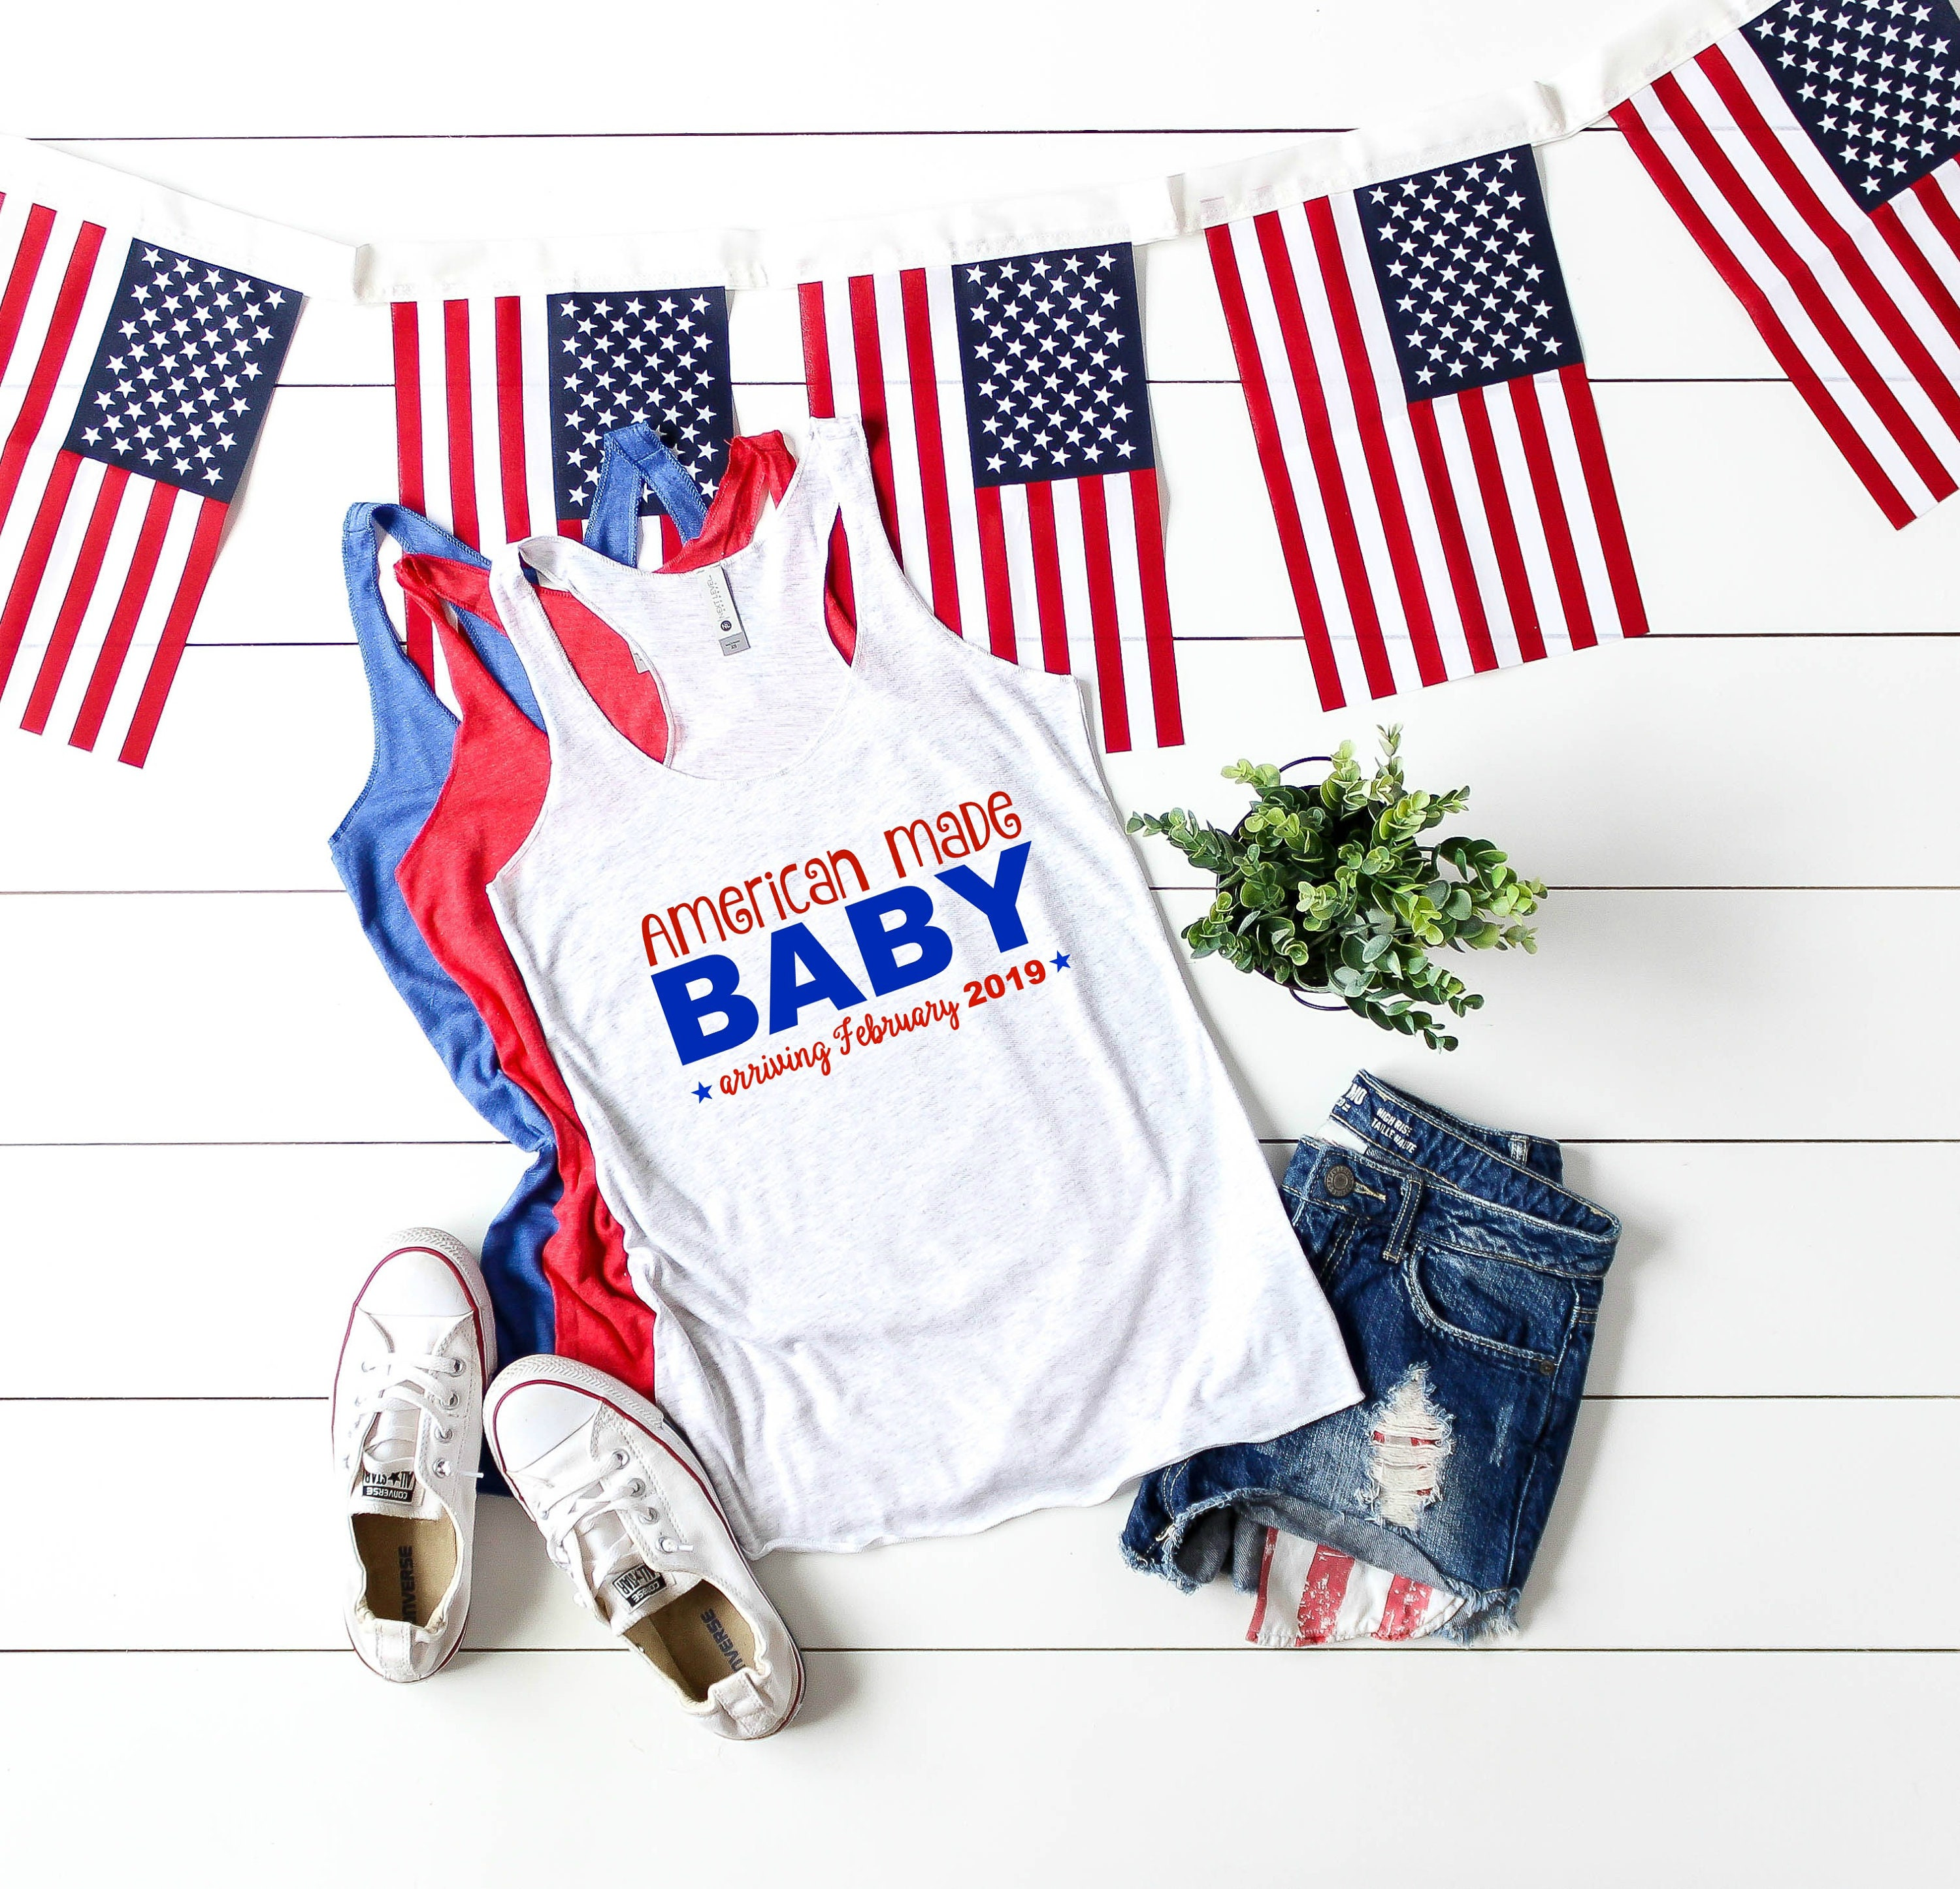 98a5155213ffd American Made Baby Announcement 4th of July Pregnancy Reveal